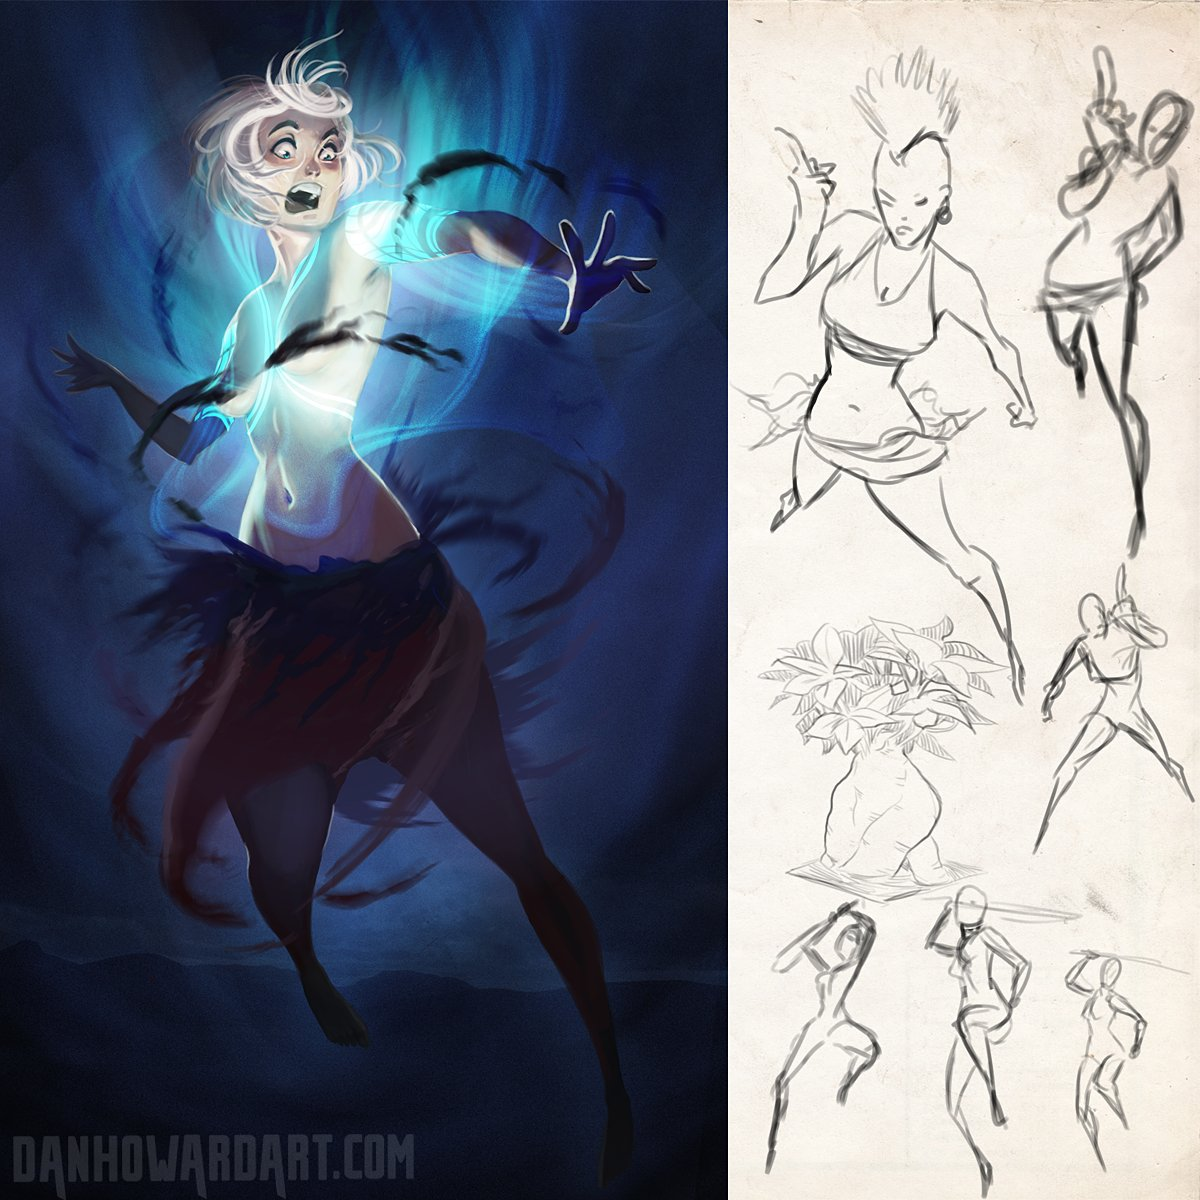 failed concepts and sketches:  #art #drawing #illustration #digitalart #danhowardart<br>http://pic.twitter.com/3ZX0SVAtRR